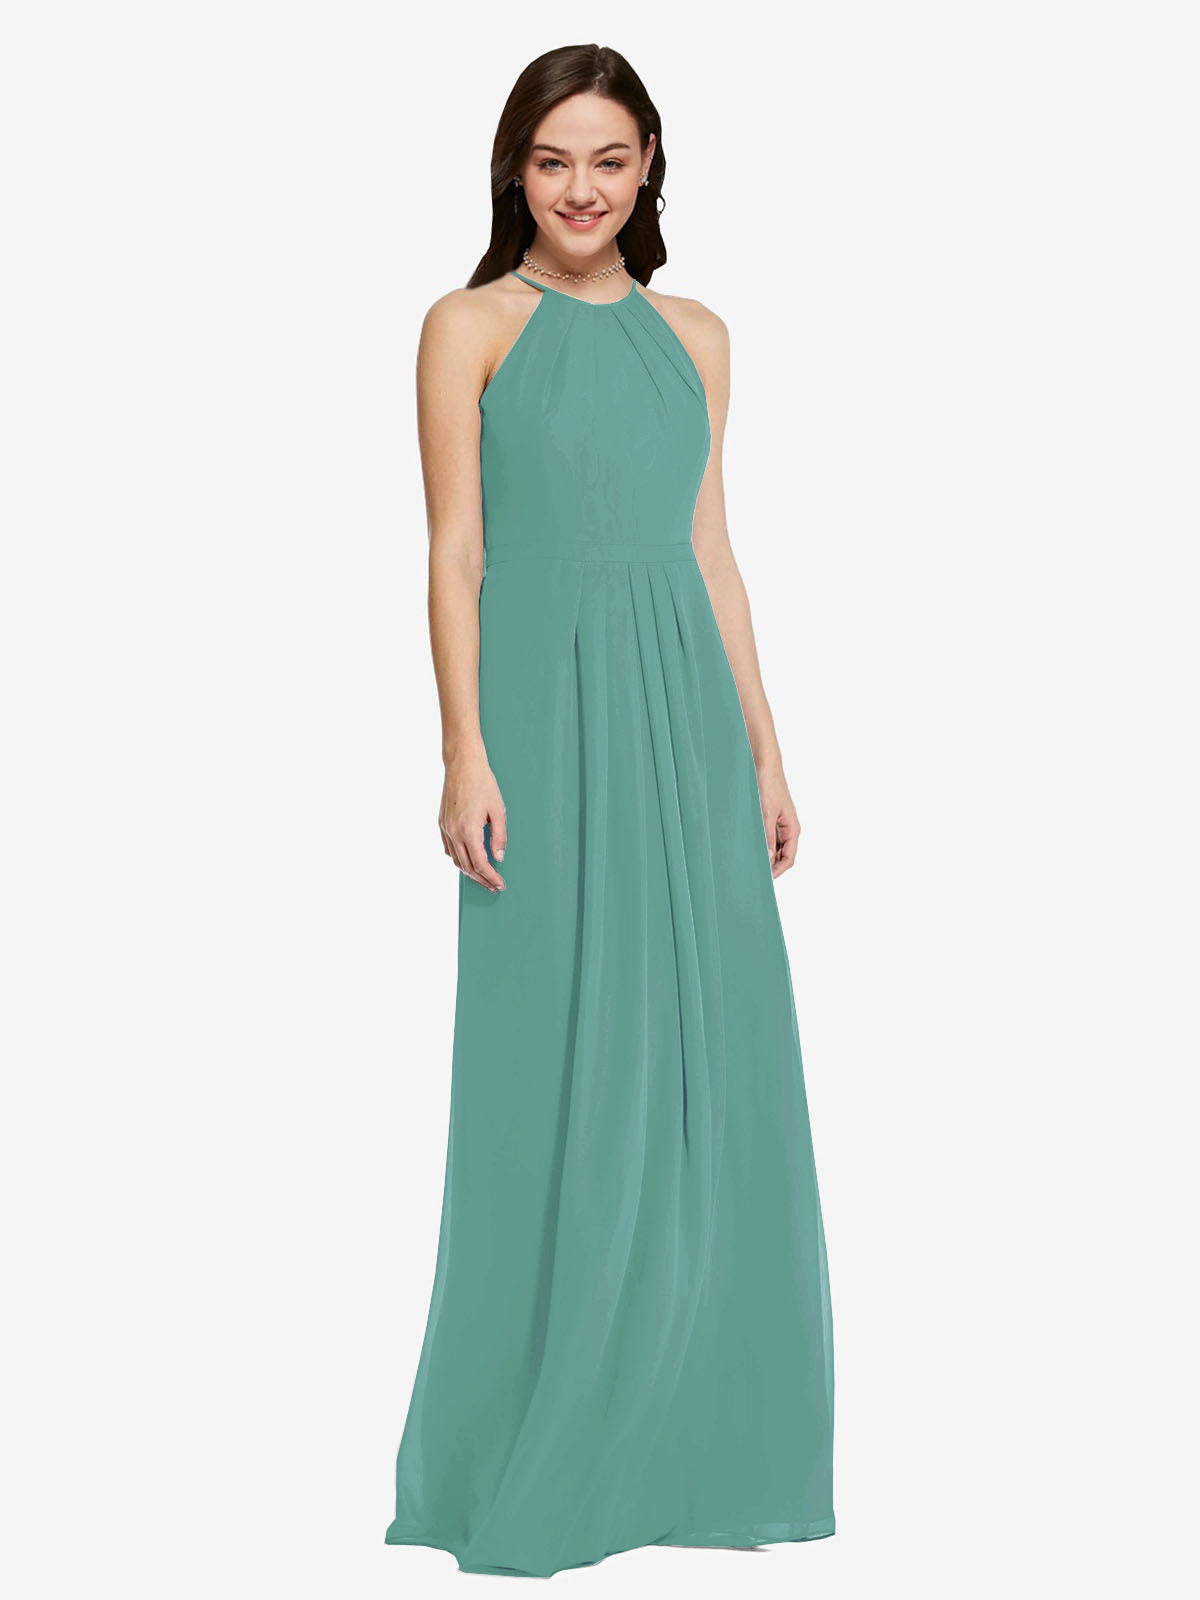 Long Sheath High Neck Halter Sleeveless Icelandic Silver Chiffon Bridesmaid Dress Koloti